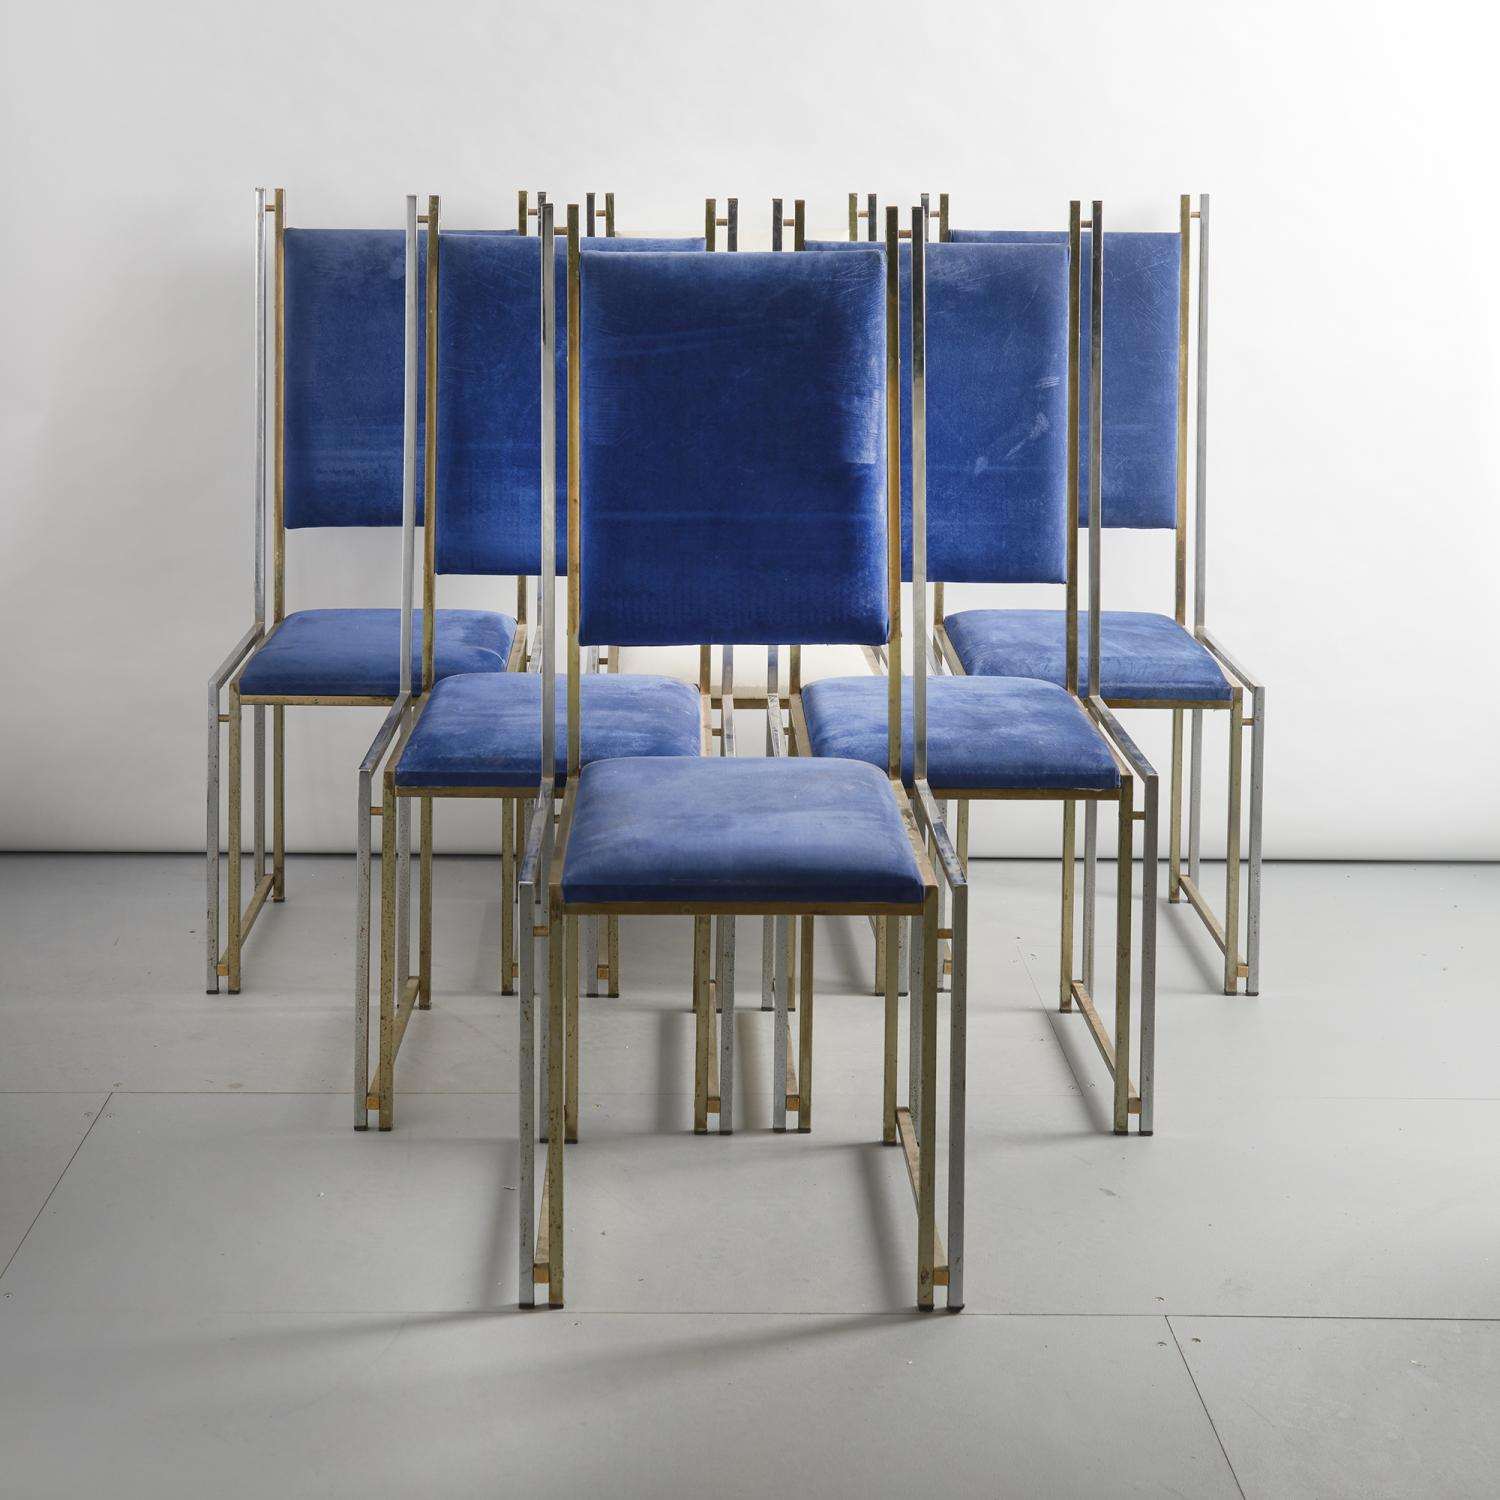 Six chrome and brass chairs